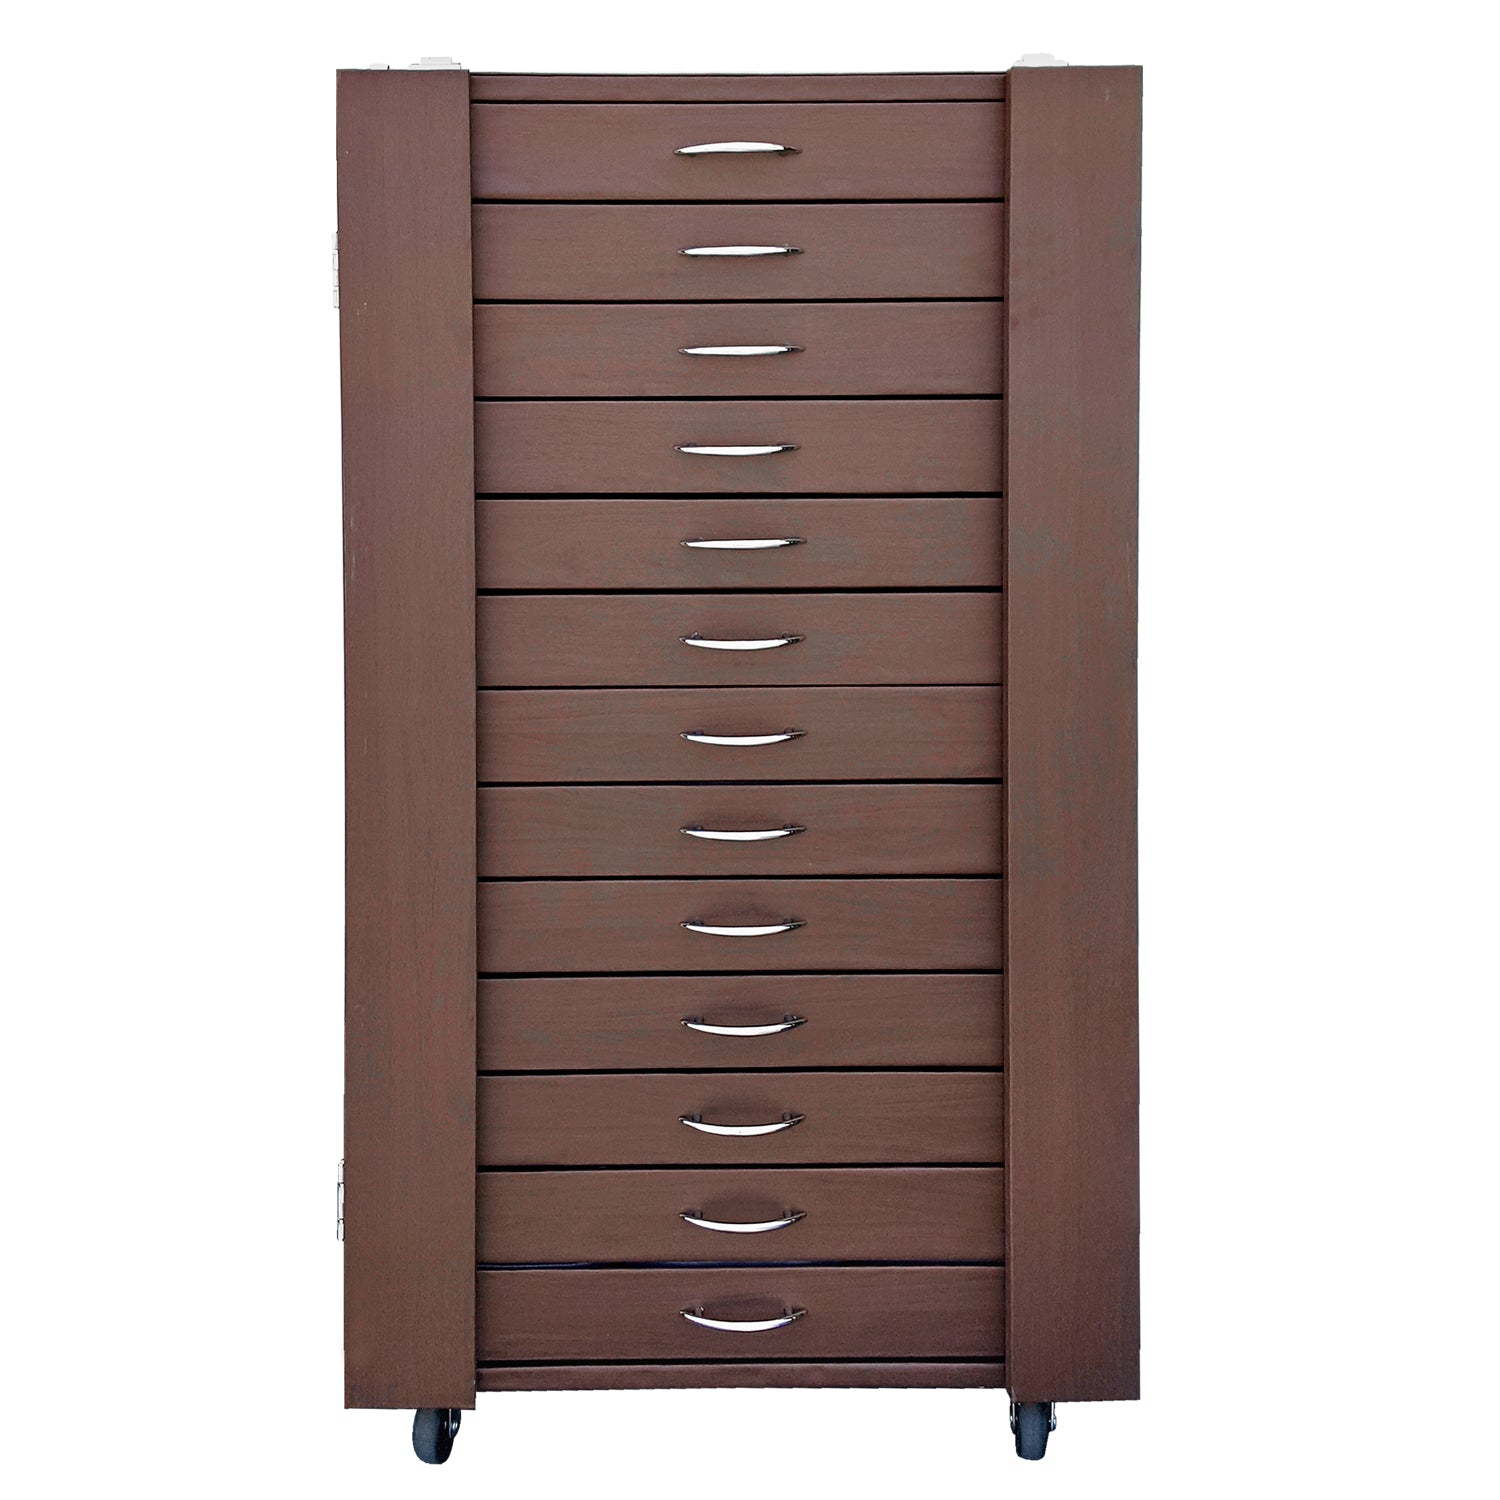 D306-13BR 234 Pairs Frame Storage Cabinet- Eyewear & Sunglasses Display - with Lock and Wheels | APEX International